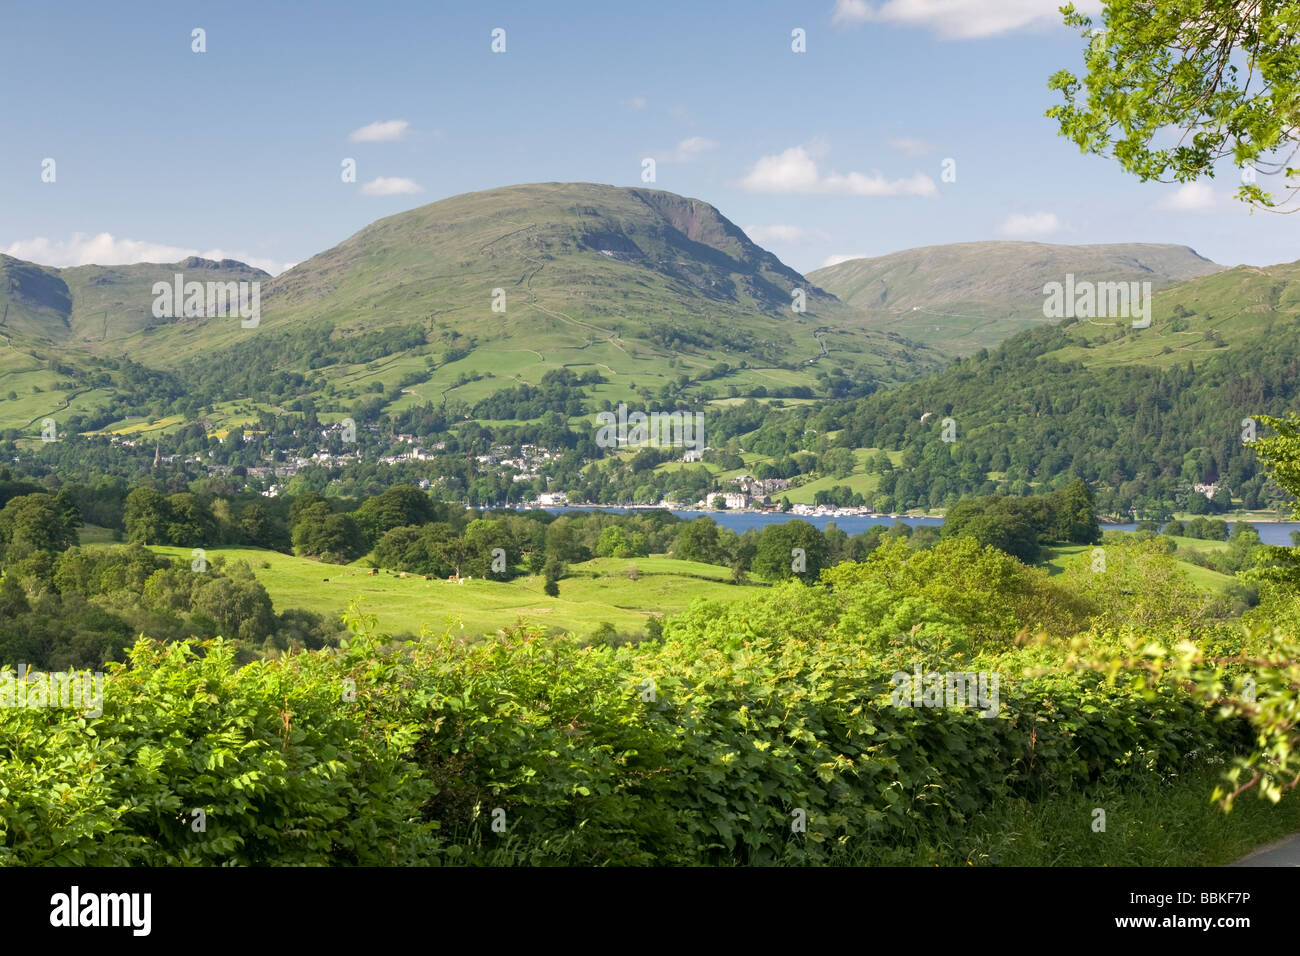 The town of Ambleside sits on the shore of Windermere in the Lake District, England - Stock Image